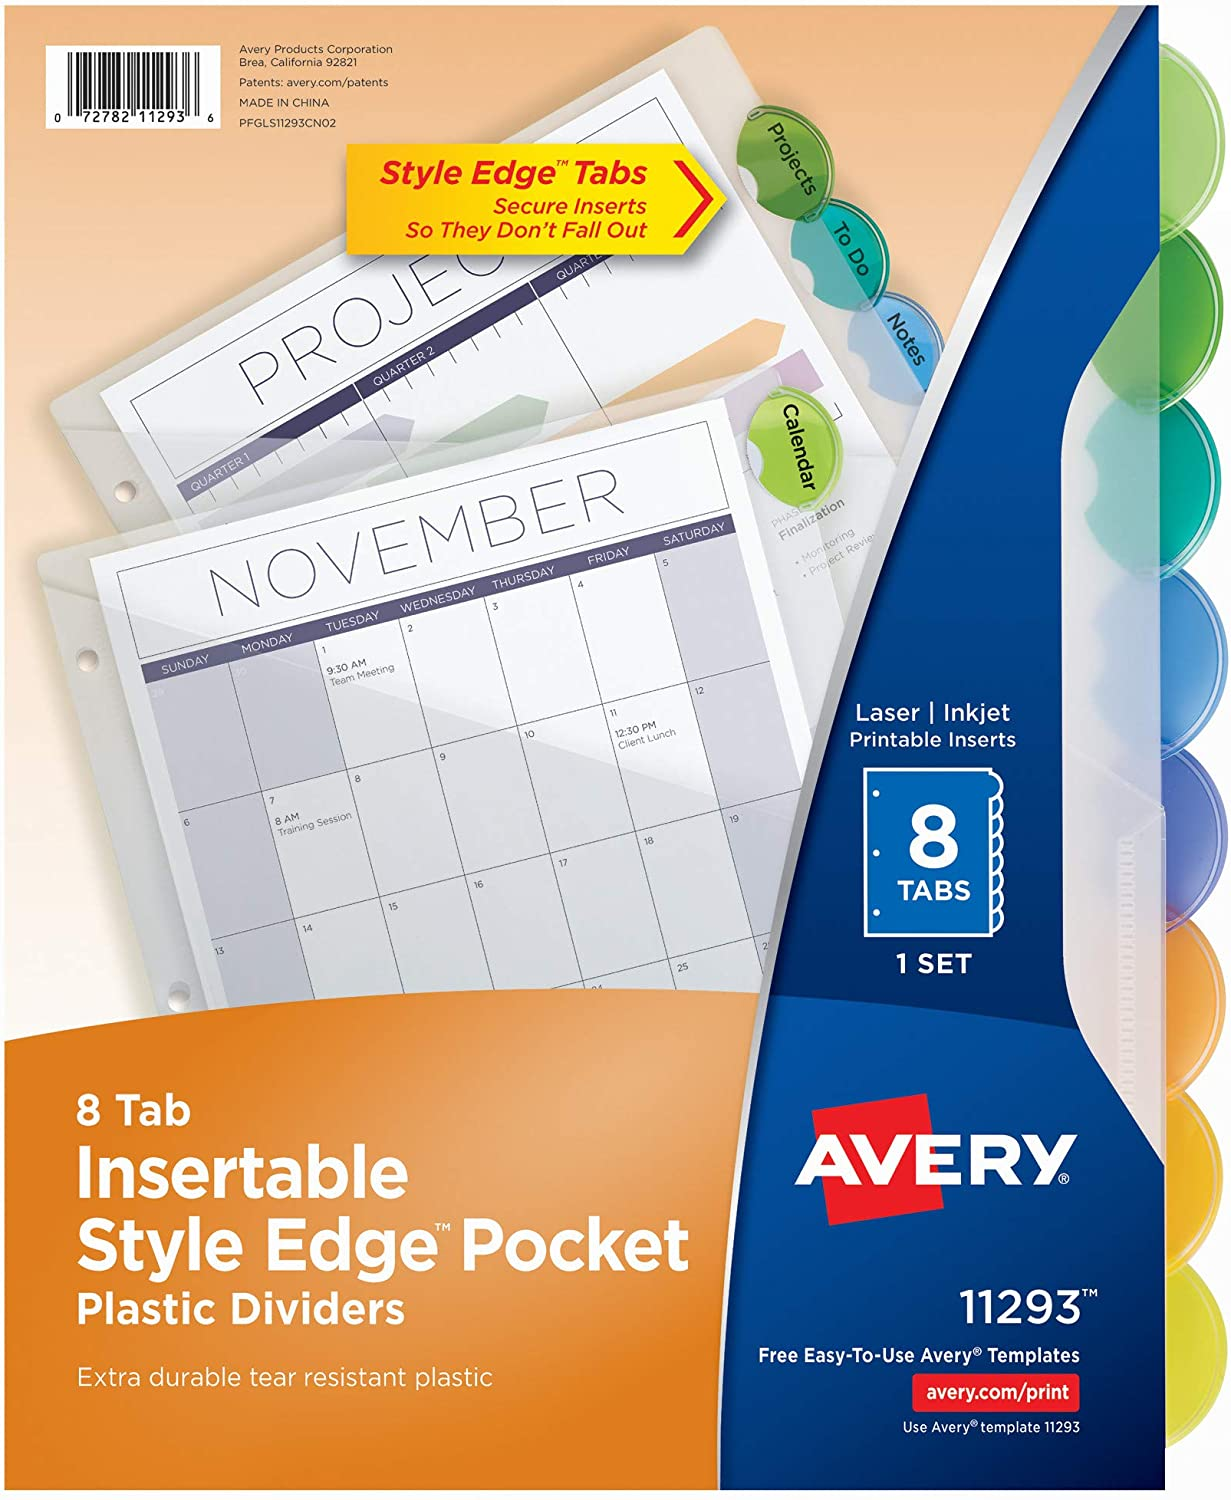 Avery Plastic 8-Tab Binder Dividers with Pockets, Style Edge Insertable Multicolor Tabs, 1 Set (11293)